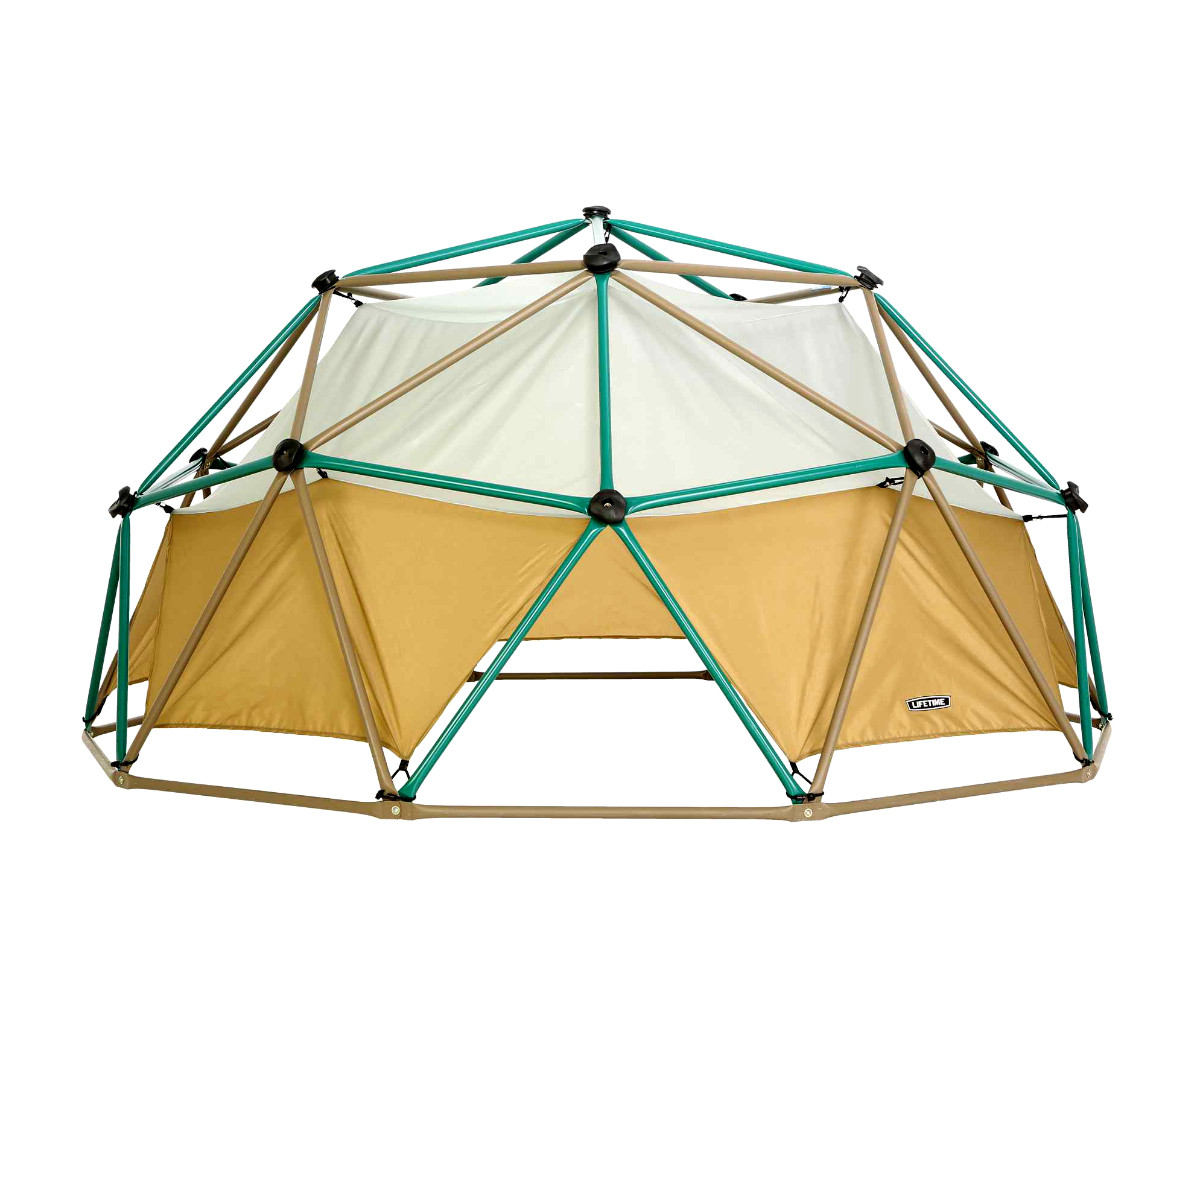 Lifetime Geo Dome Climber with Tent - Earthtone Colors